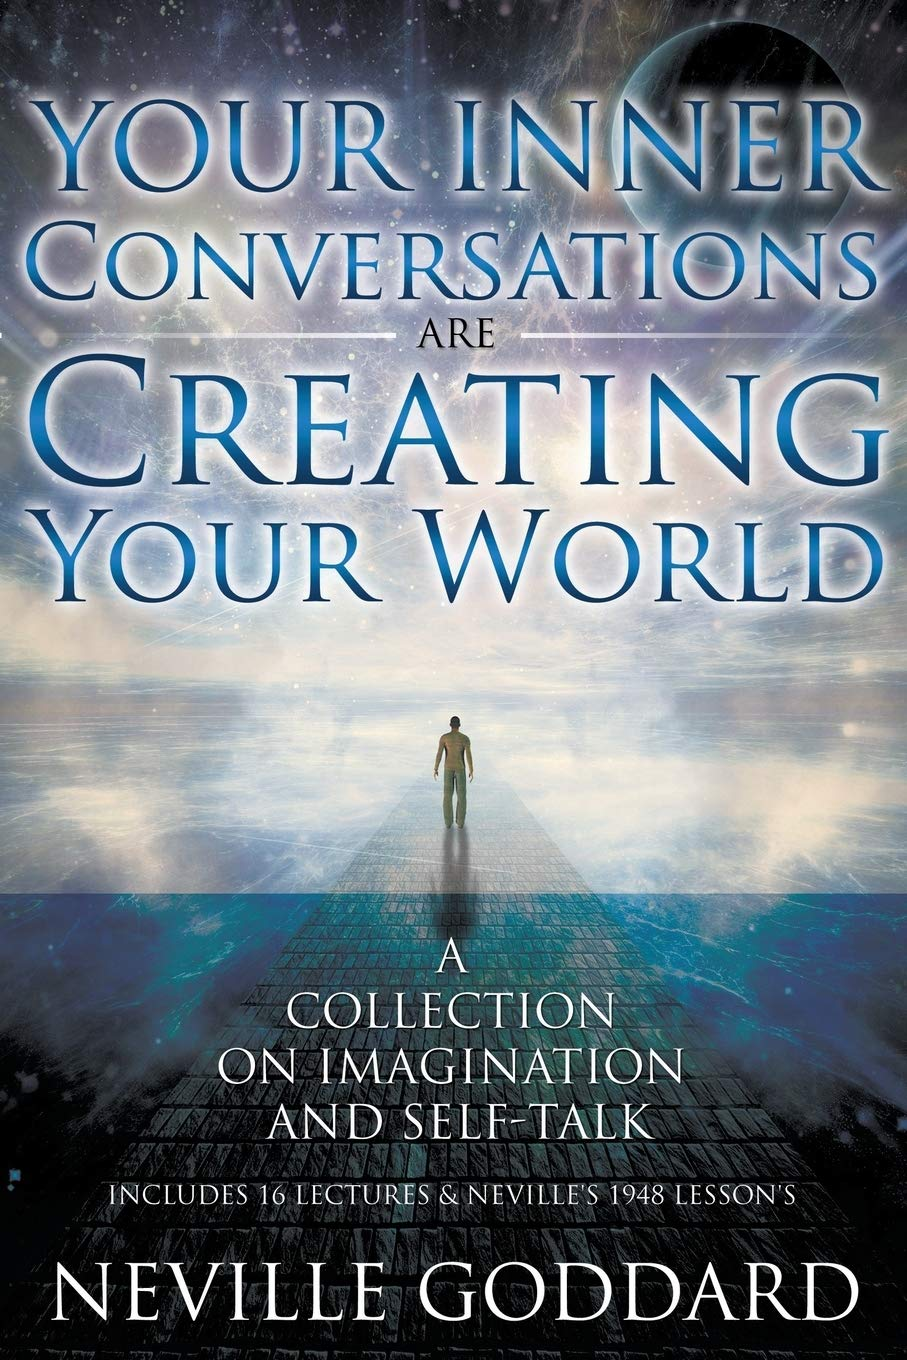 Neville Goddard: Your Inner Conversations Are